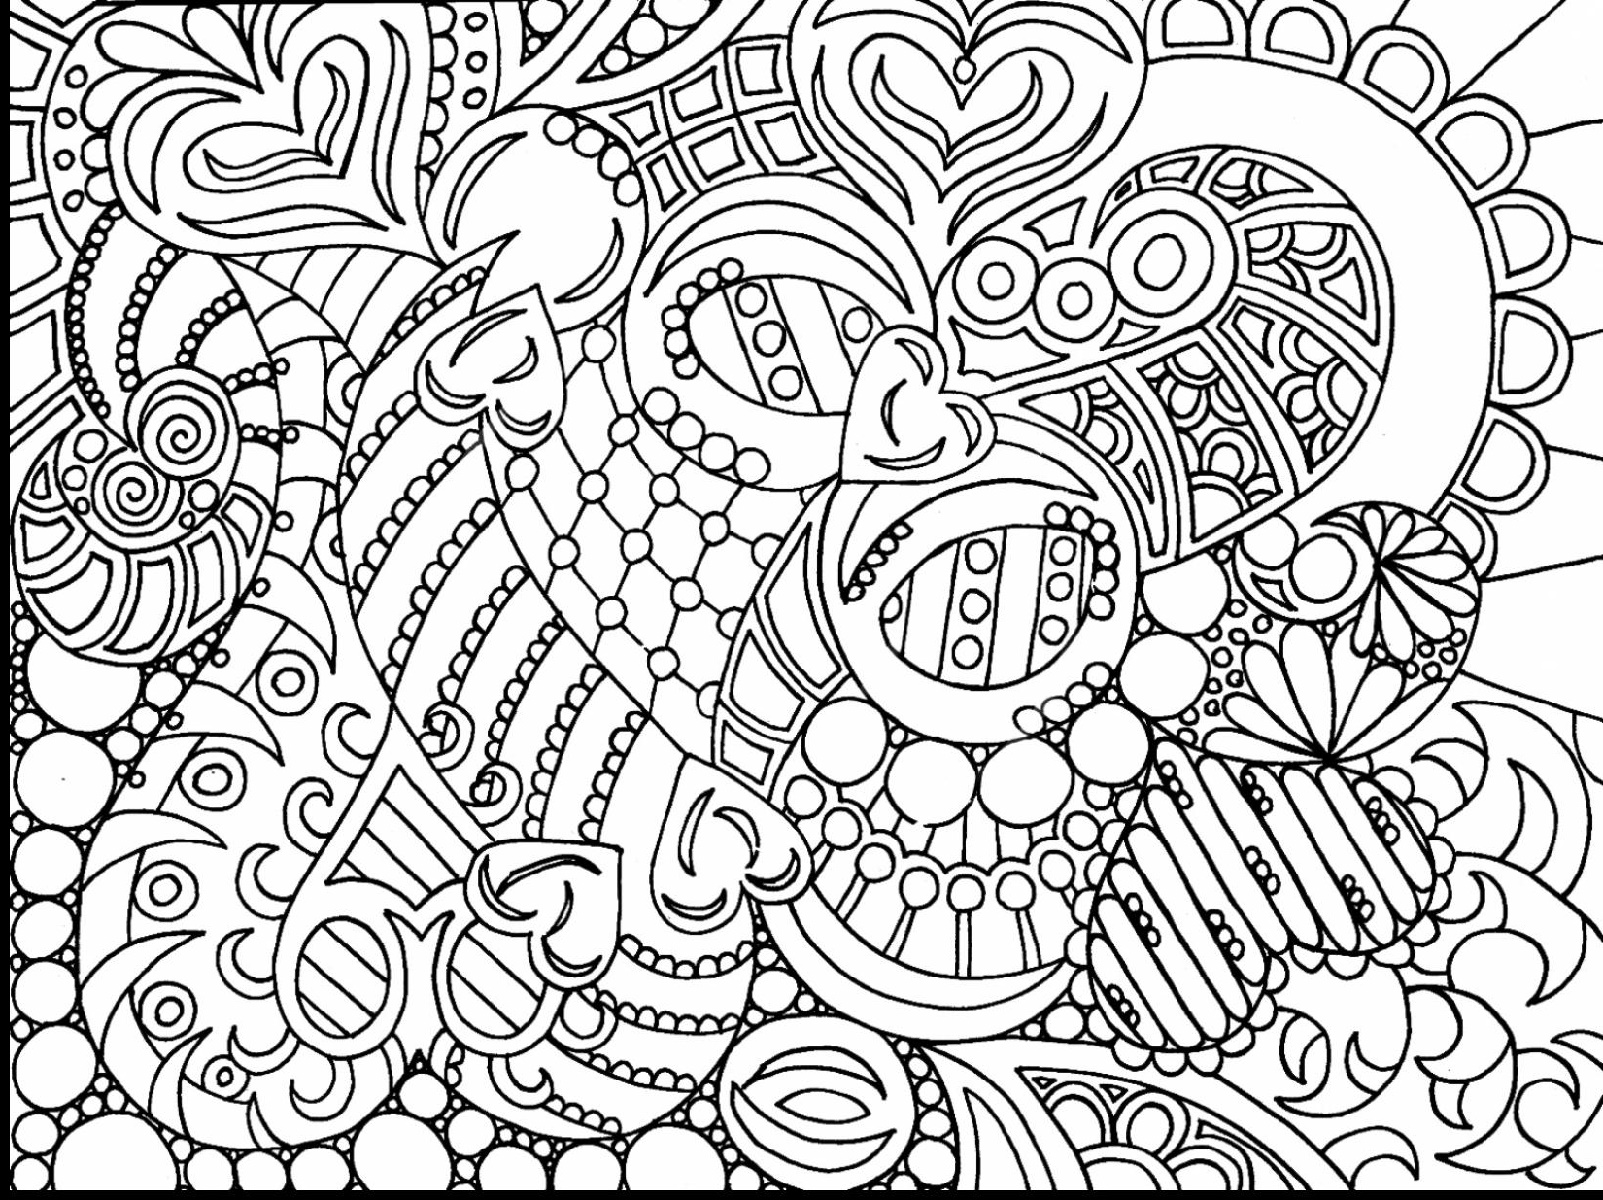 Printable-Coloring-Pages-for-Adults-Free